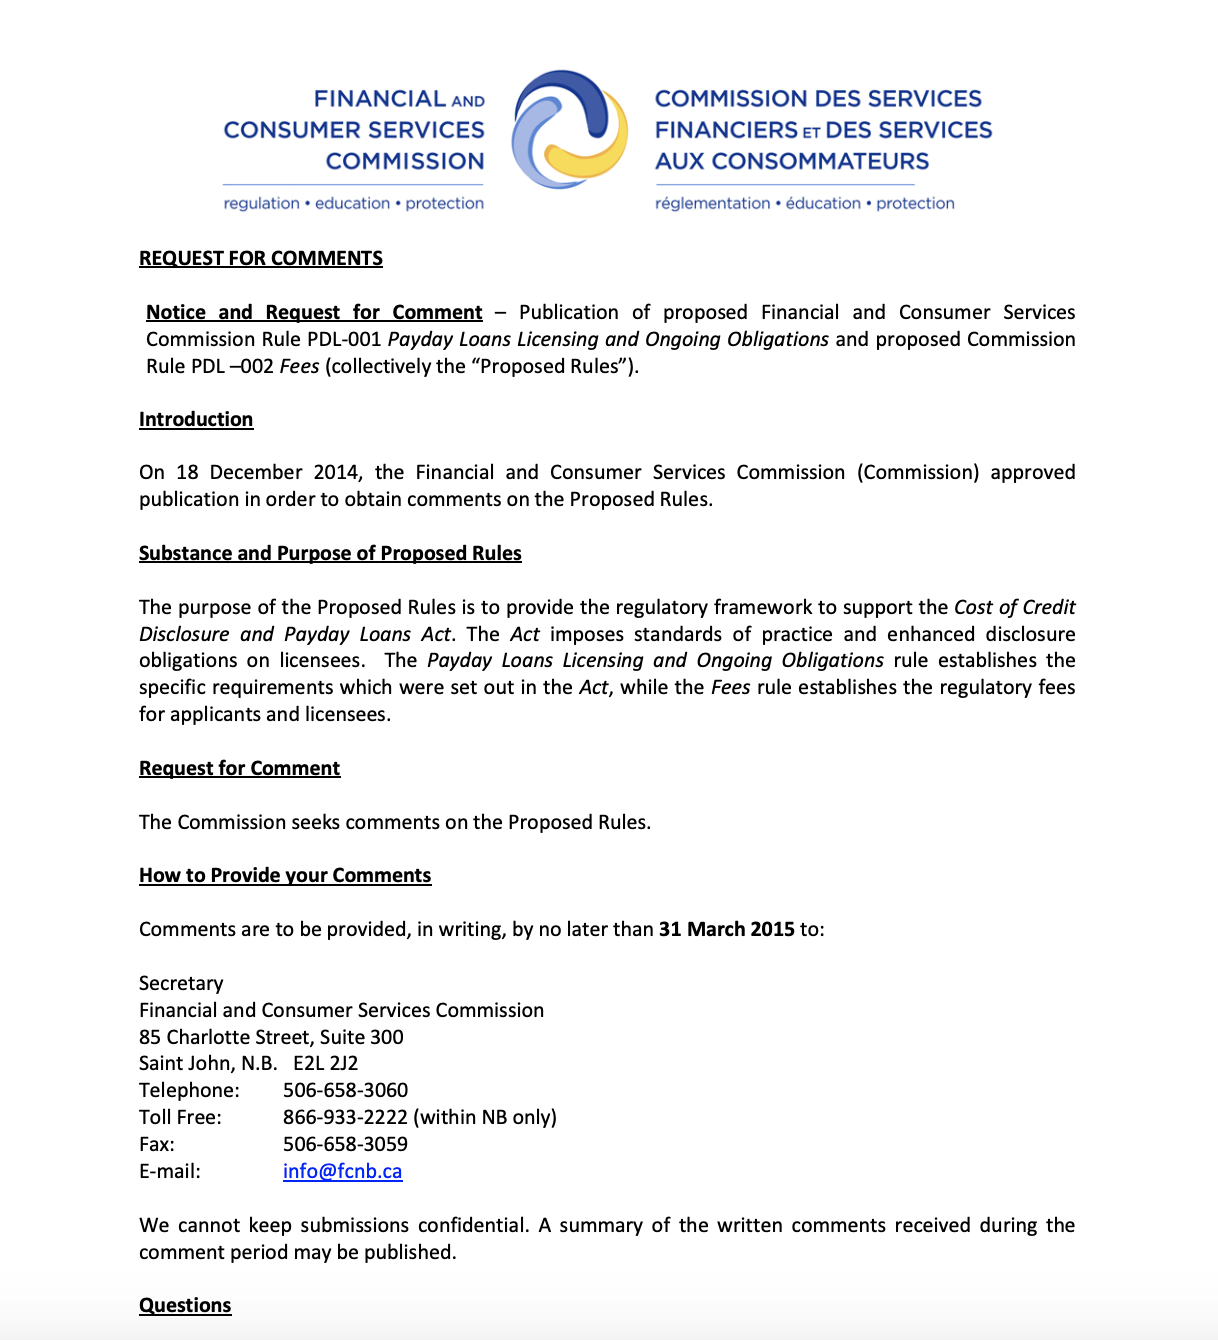 Initial Request for Comments from the Financial and Consumer Services Commission